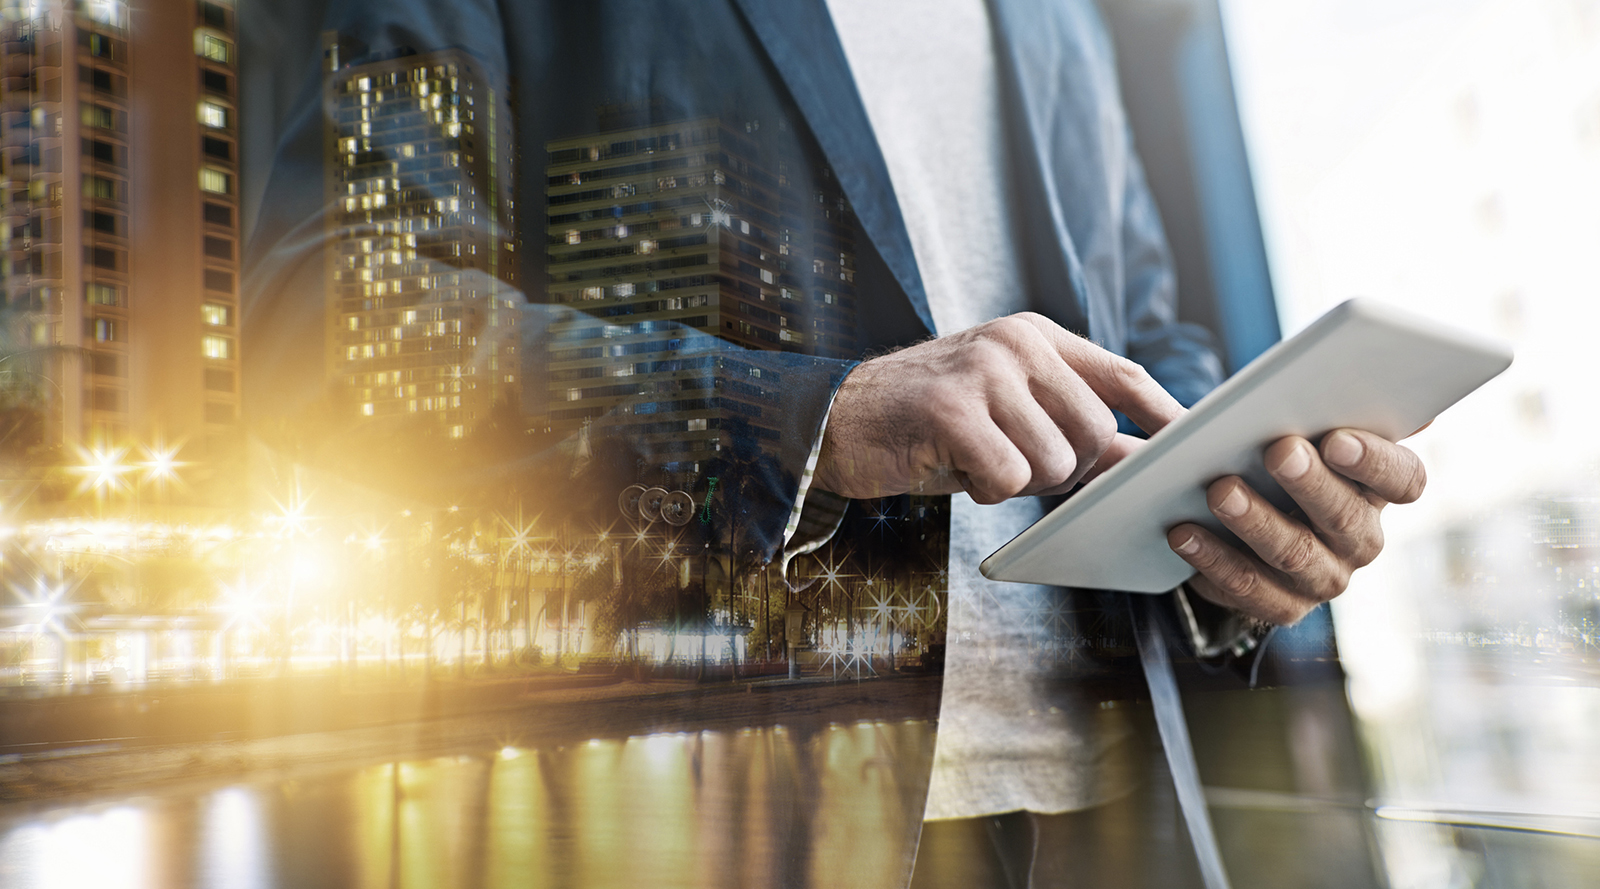 Man reading digital tablet, cityscape in foreground